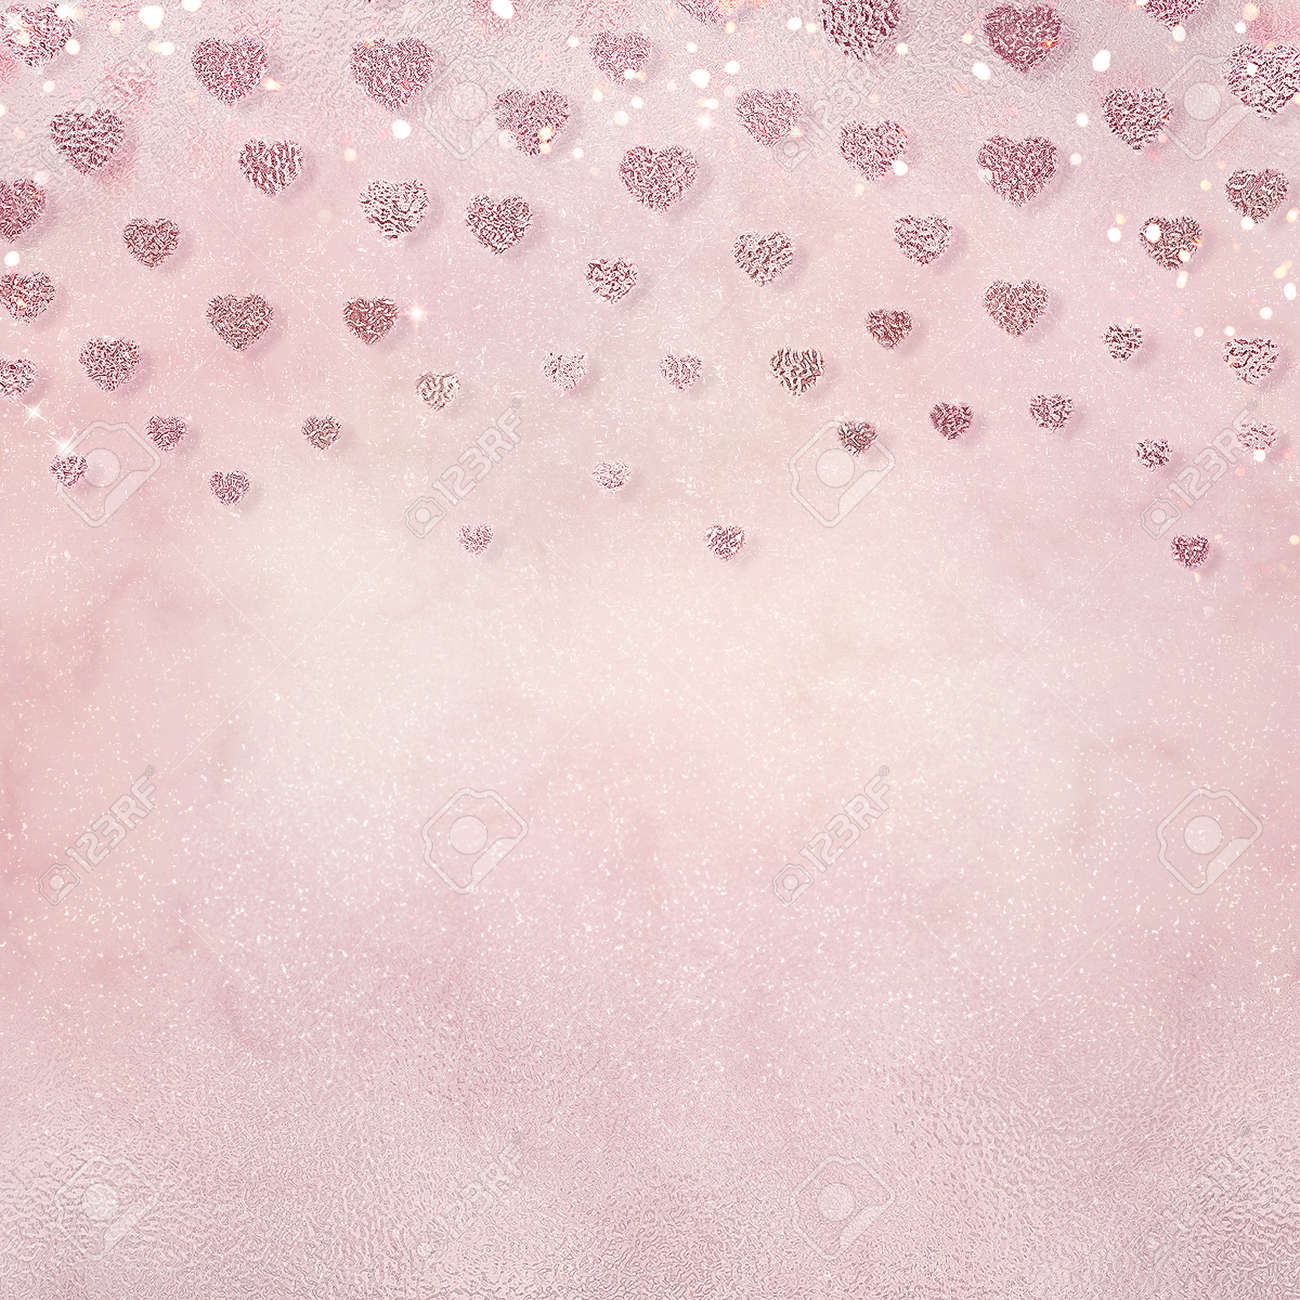 Romantic background for wedding or Valentines day design. Beautiful pink wallpaper with hearts and shiny bokeh. - 162361766